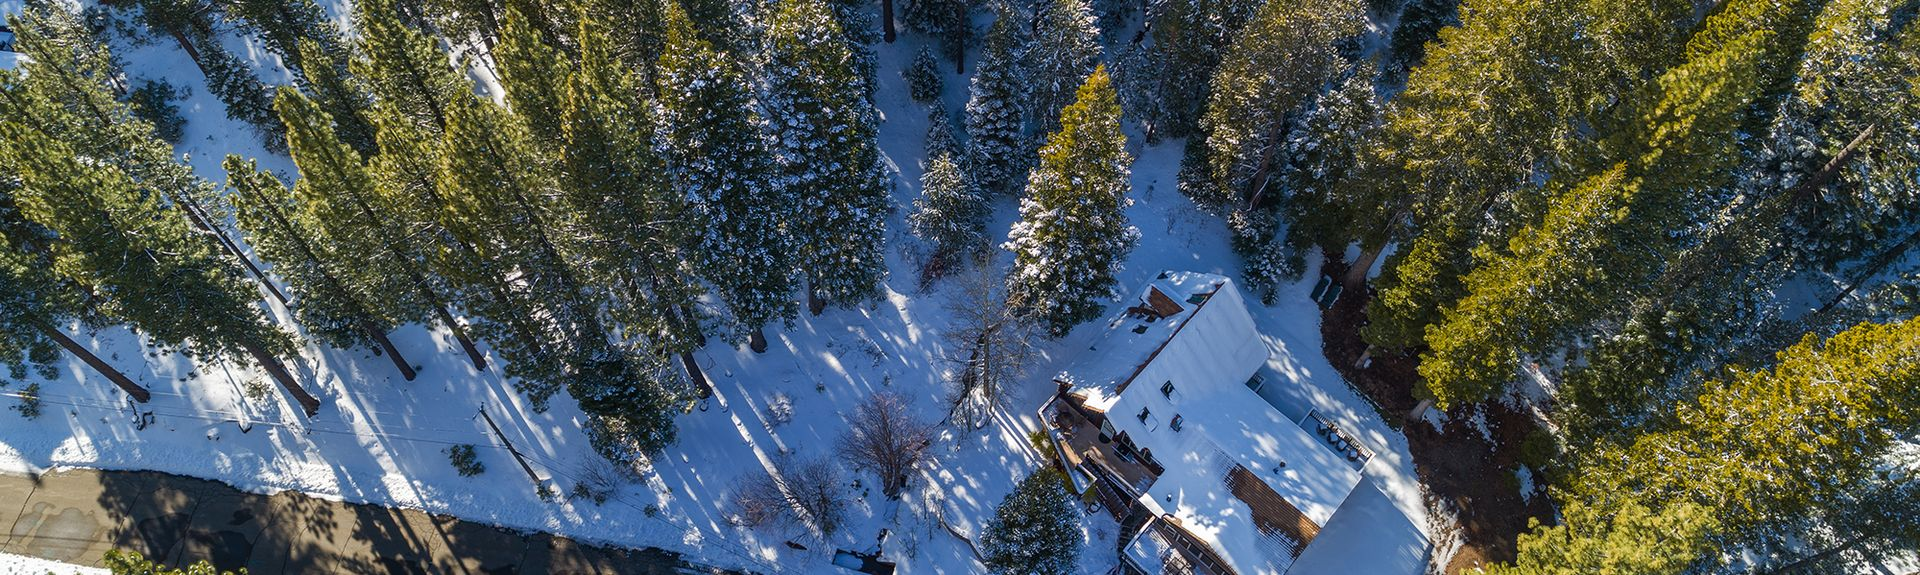 North Upper Truckee, South Lake Tahoe, Californie, États-Unis